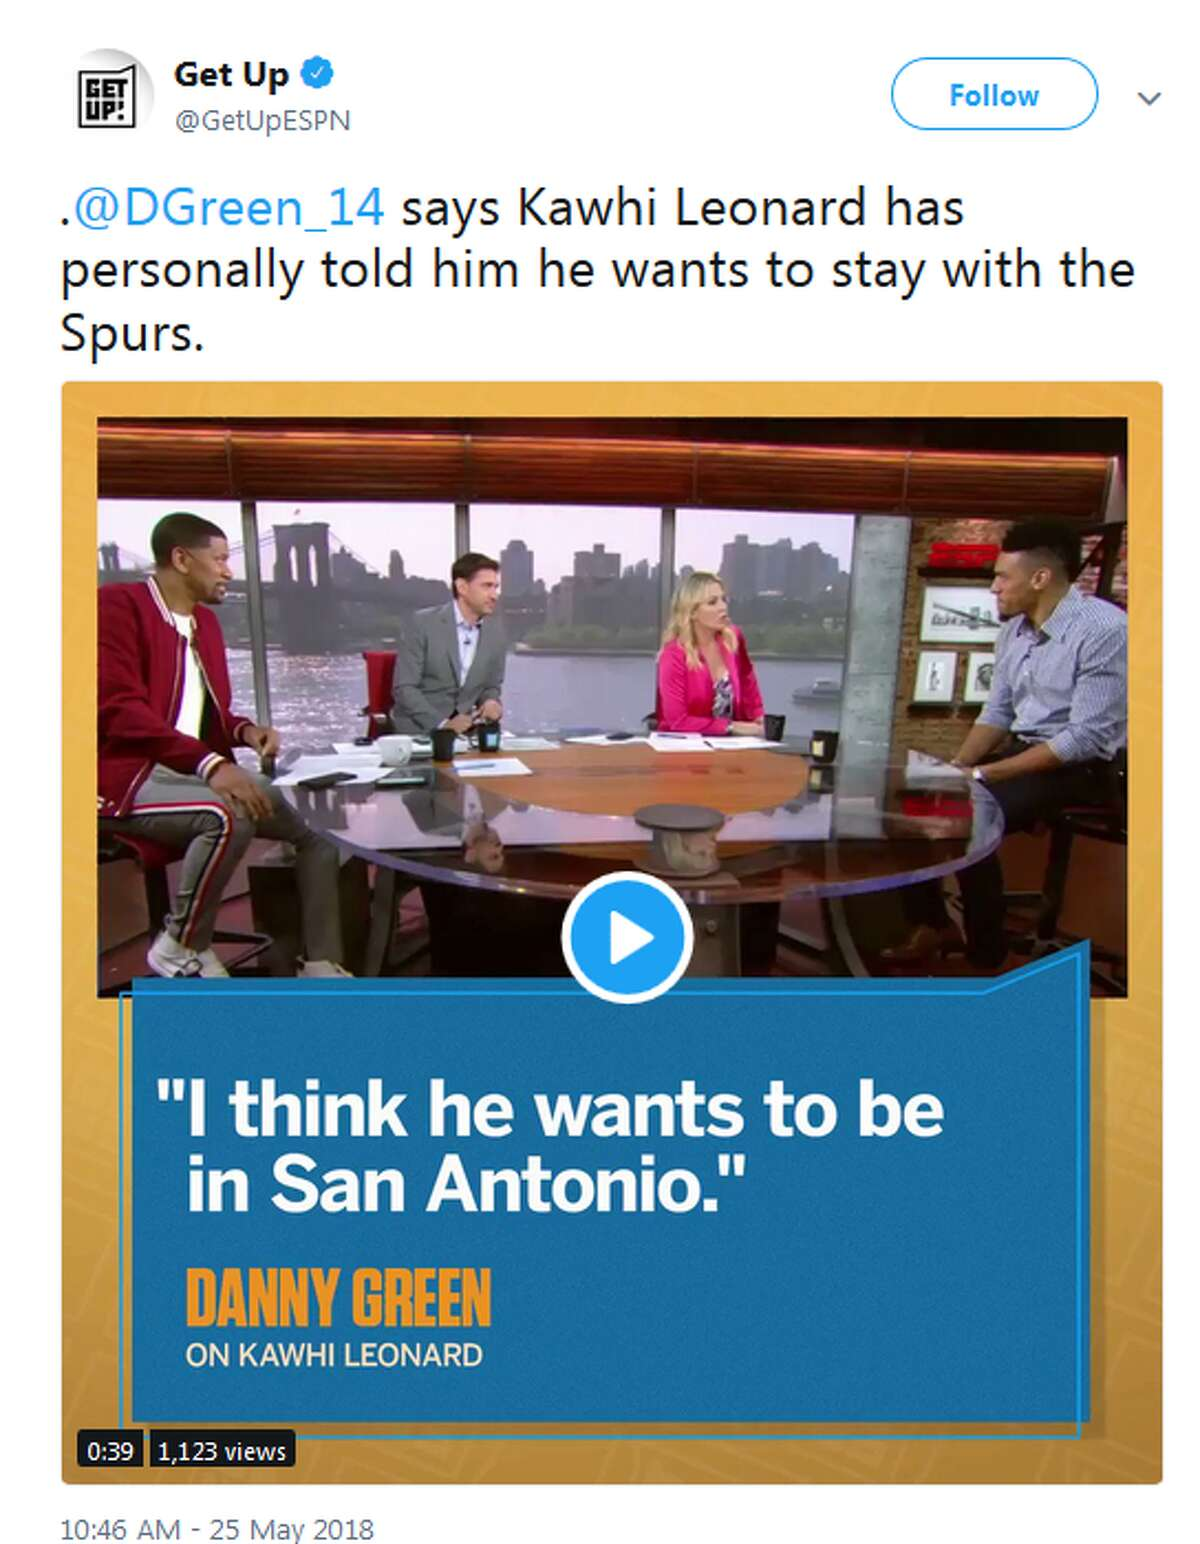 Spurs guard Danny Green told ESPN's morning show Get Up! that he has spoken with Kawhi Leonard and though the situation is